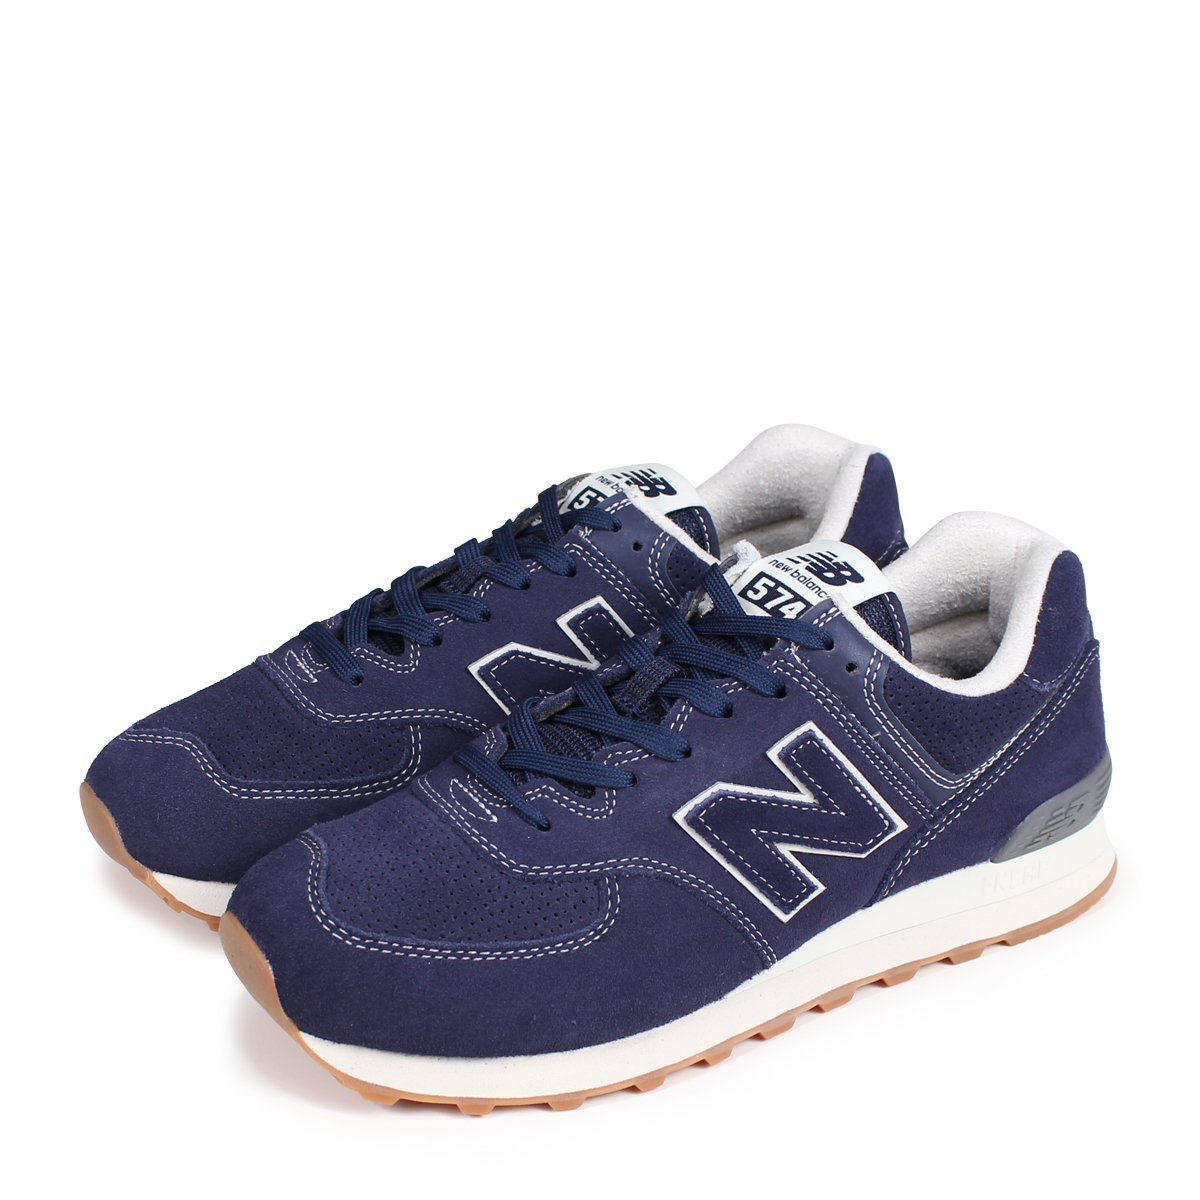 new arrival 379e4 a1657 new balance ML574ESE New Balance 574 men's sneakers D Wise navy [189]